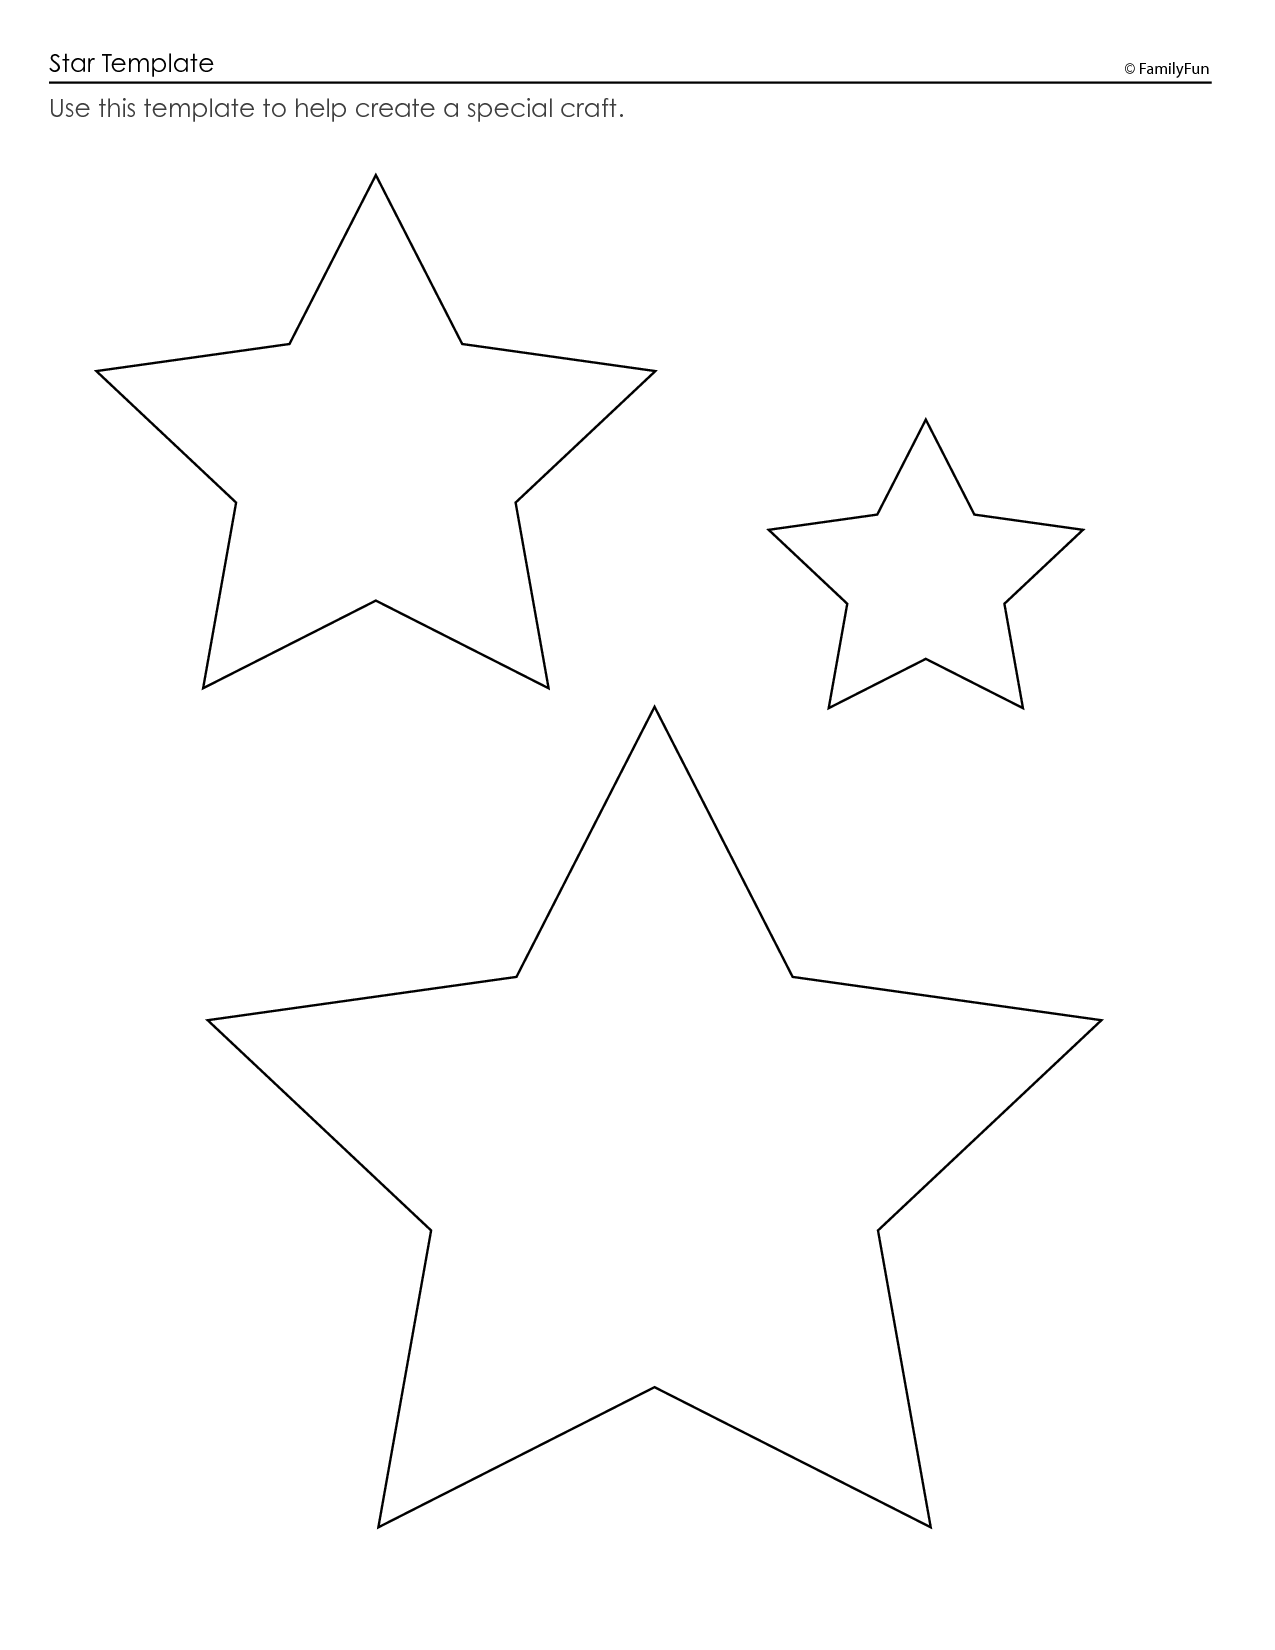 Star Pattern Education First